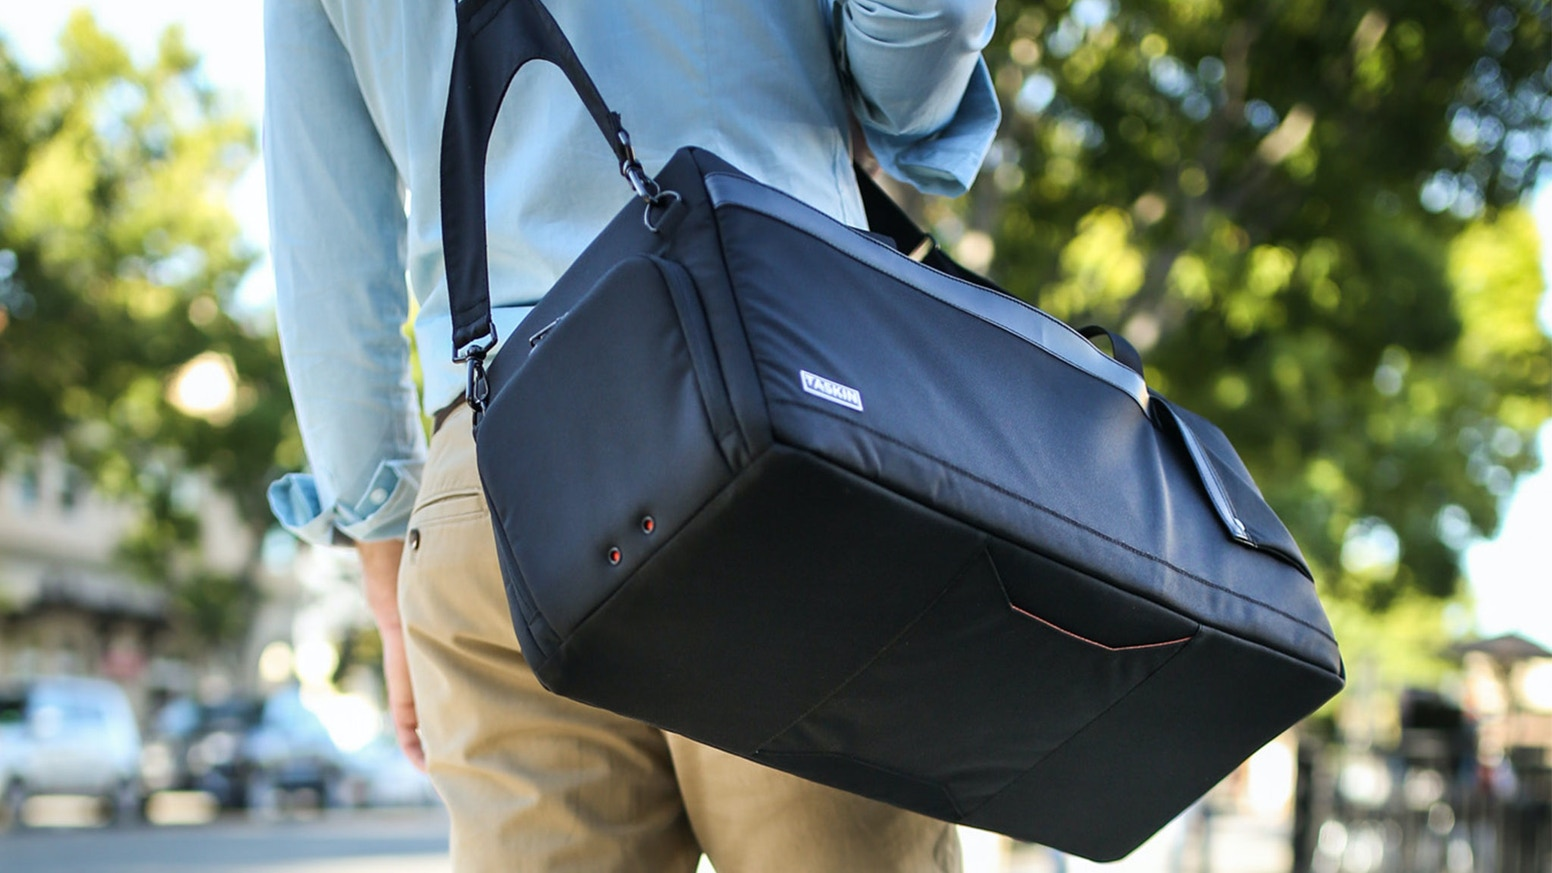 Sleek design and savvy features make Taskin Kube the best-designed duffel bag anywhere.